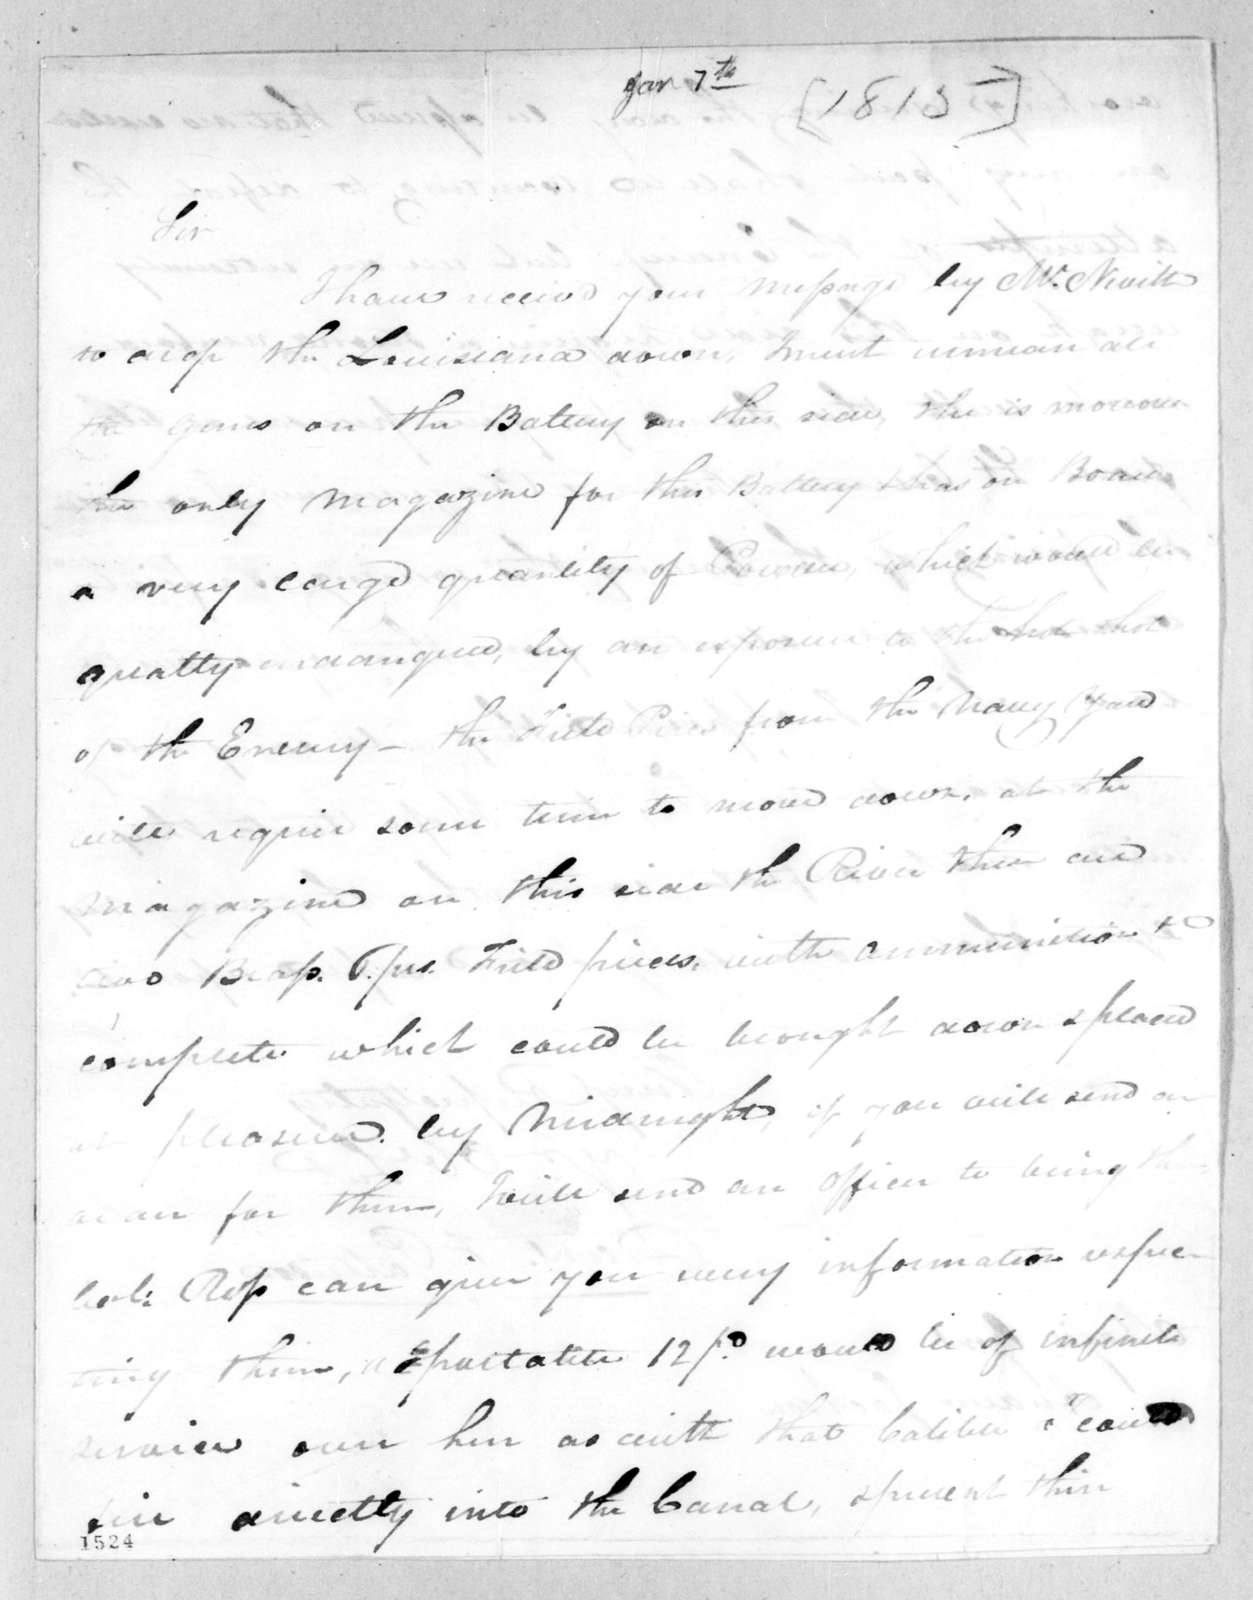 Daniel Todd Patterson to Andrew Jackson, January 7, 1815